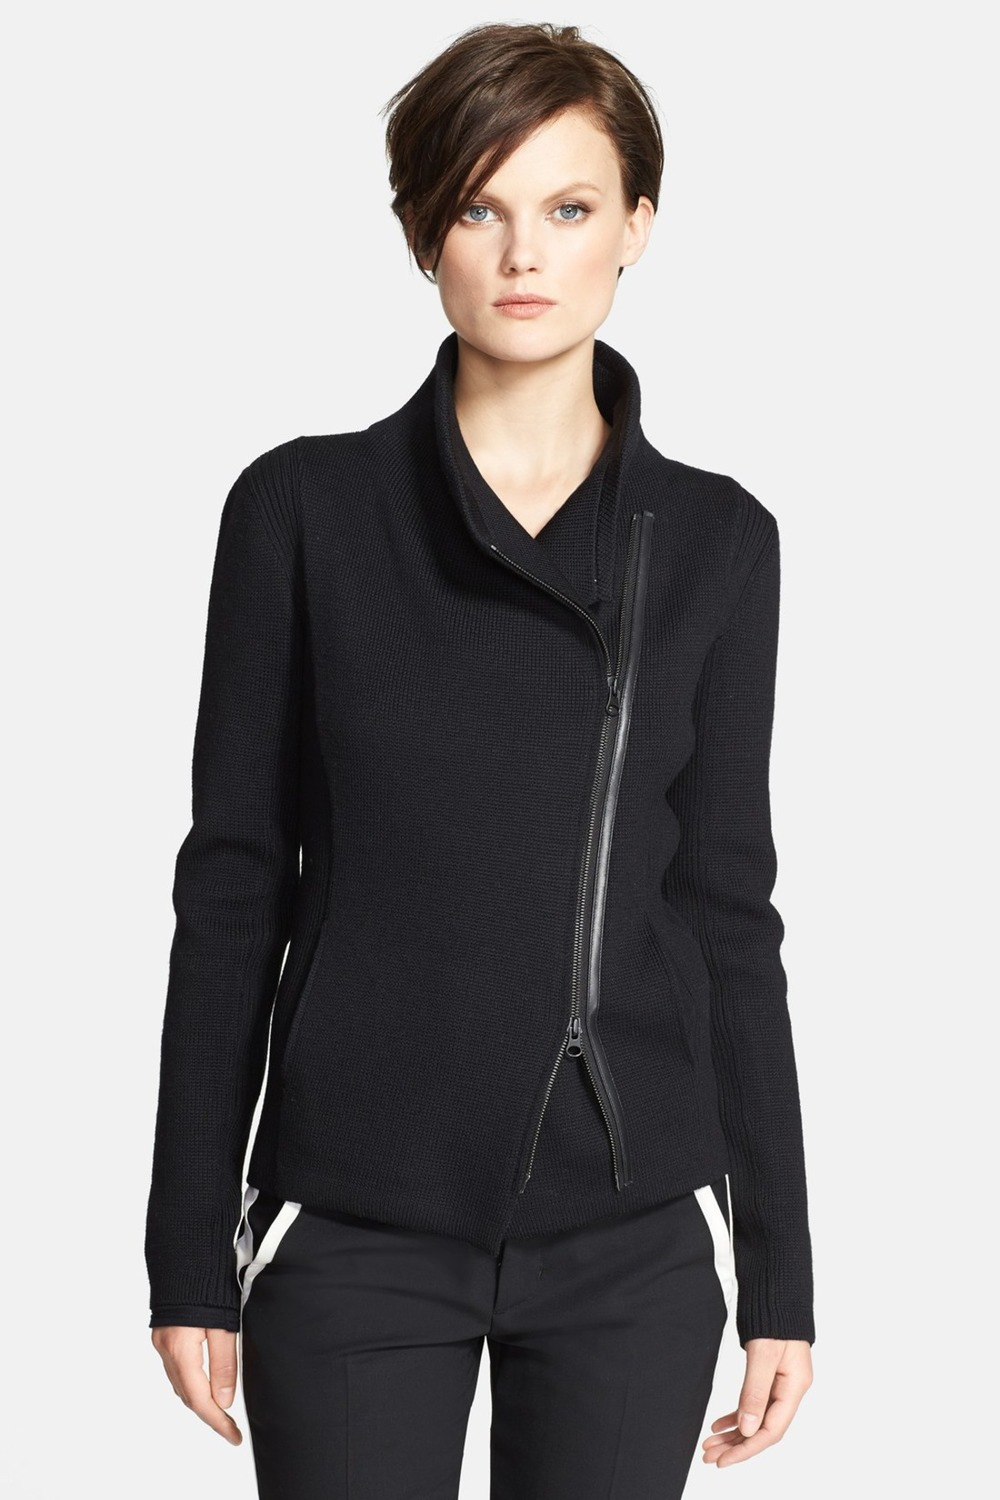 Vince Sweater Scuba Jacket. Nordstrom Rack. Was: $465 Now: $219.